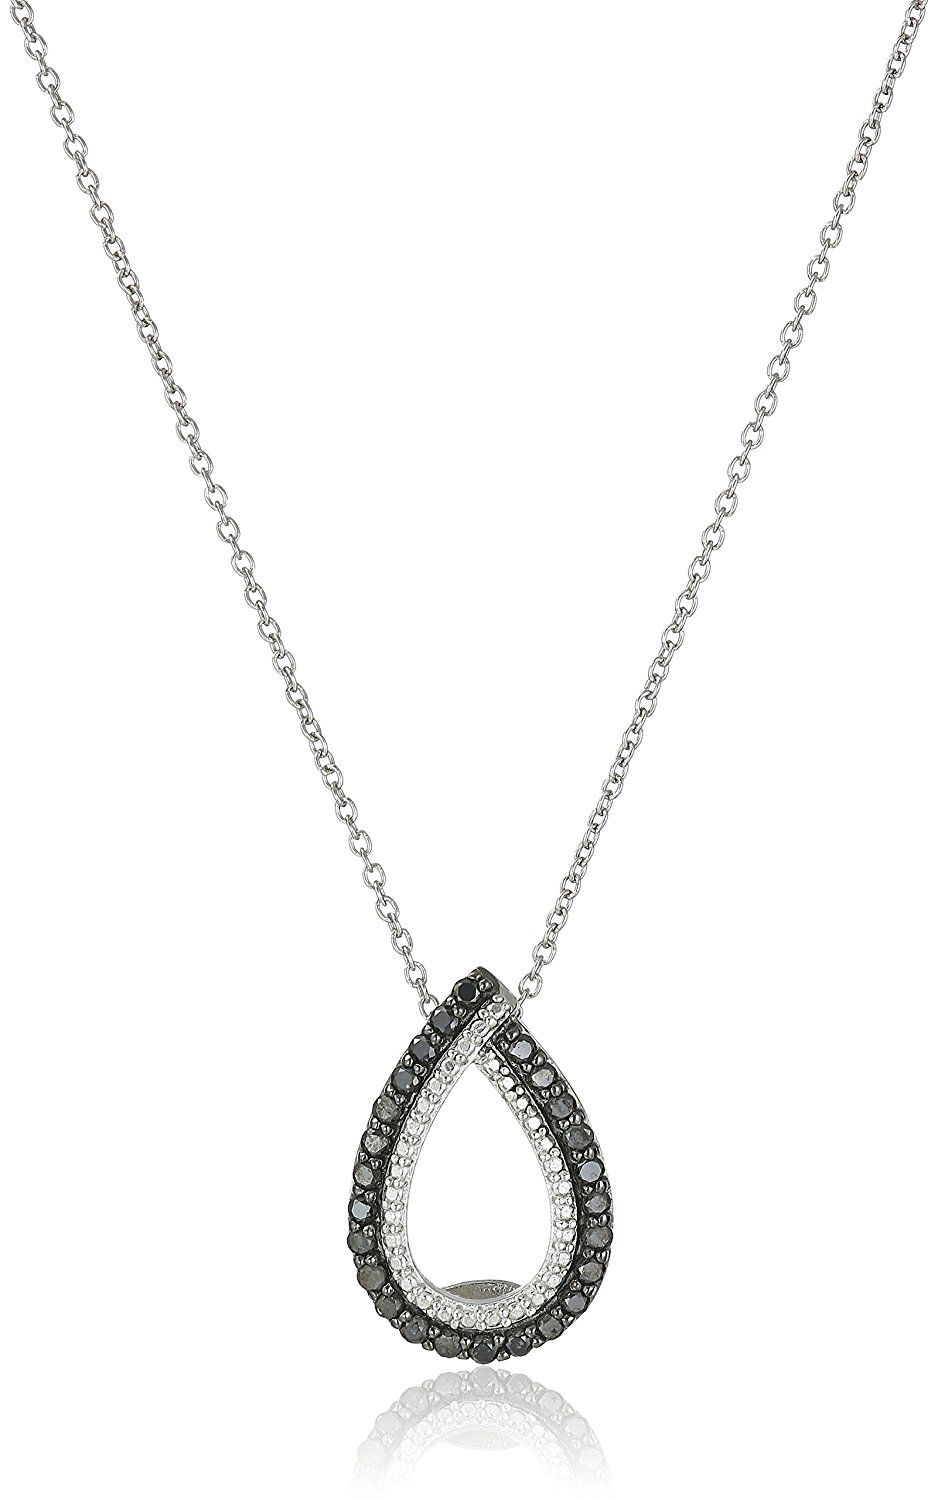 With 18 Inch Chain 1.05 CT Sterling Silver Black Diamond Pendant